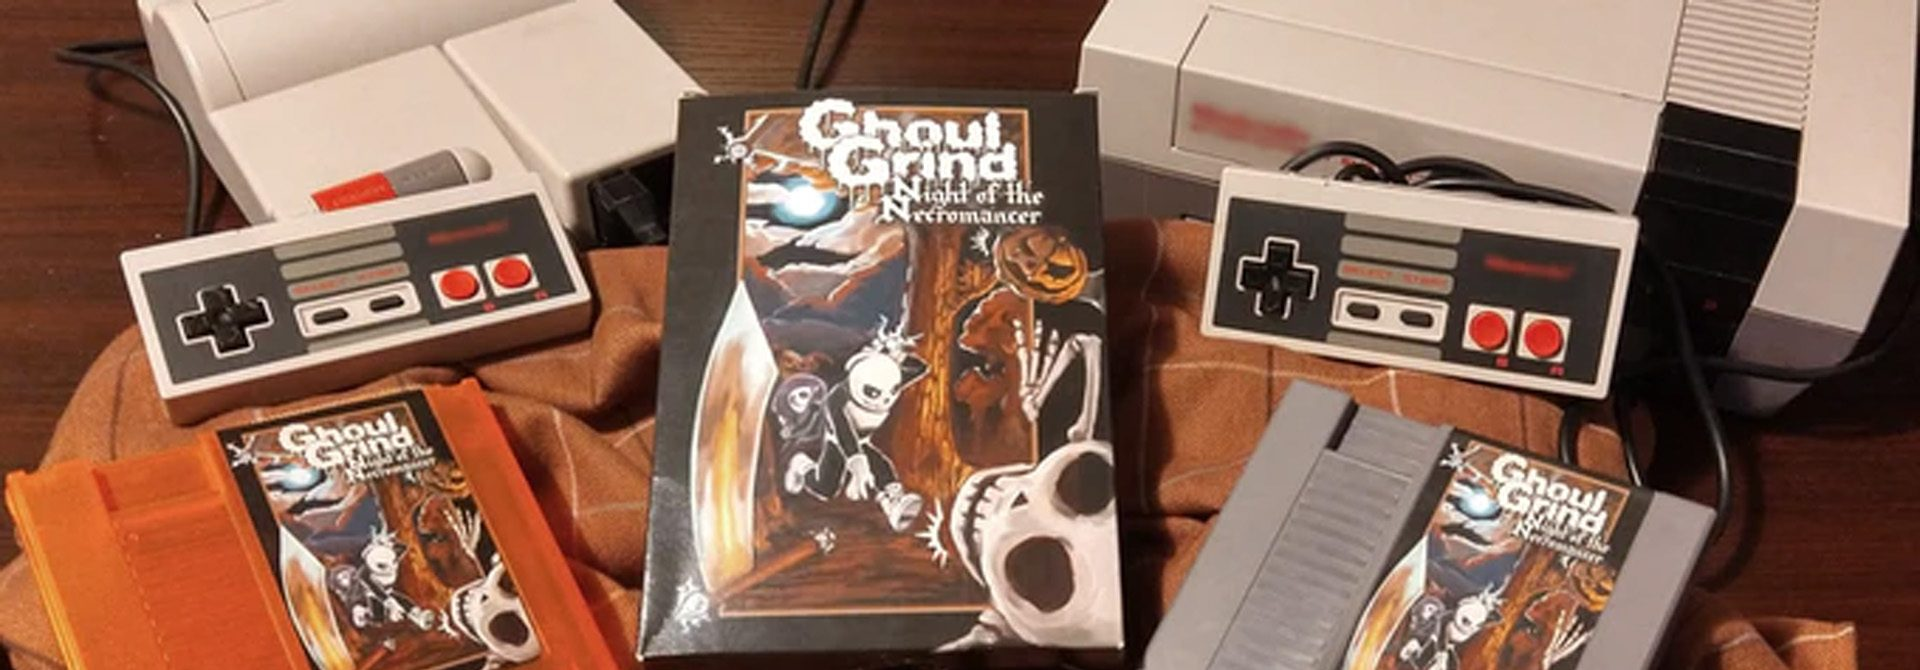 Ghoul Grind Launches Kickstarter Campaign